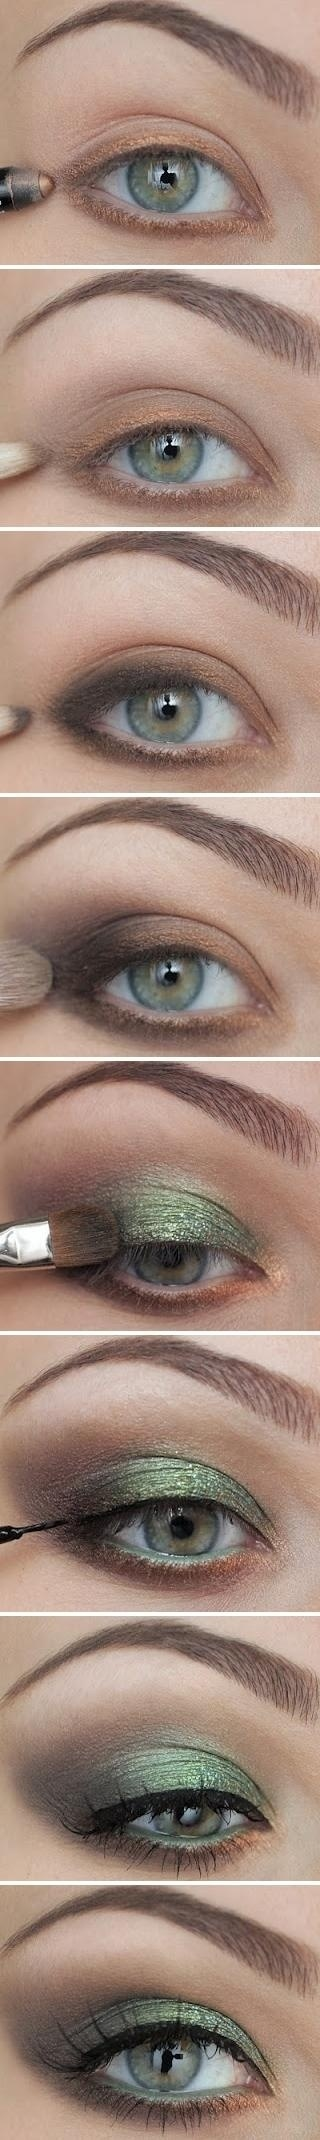 Displaying (20) Gallery Images For Smokey Eye Steps Pinterest...